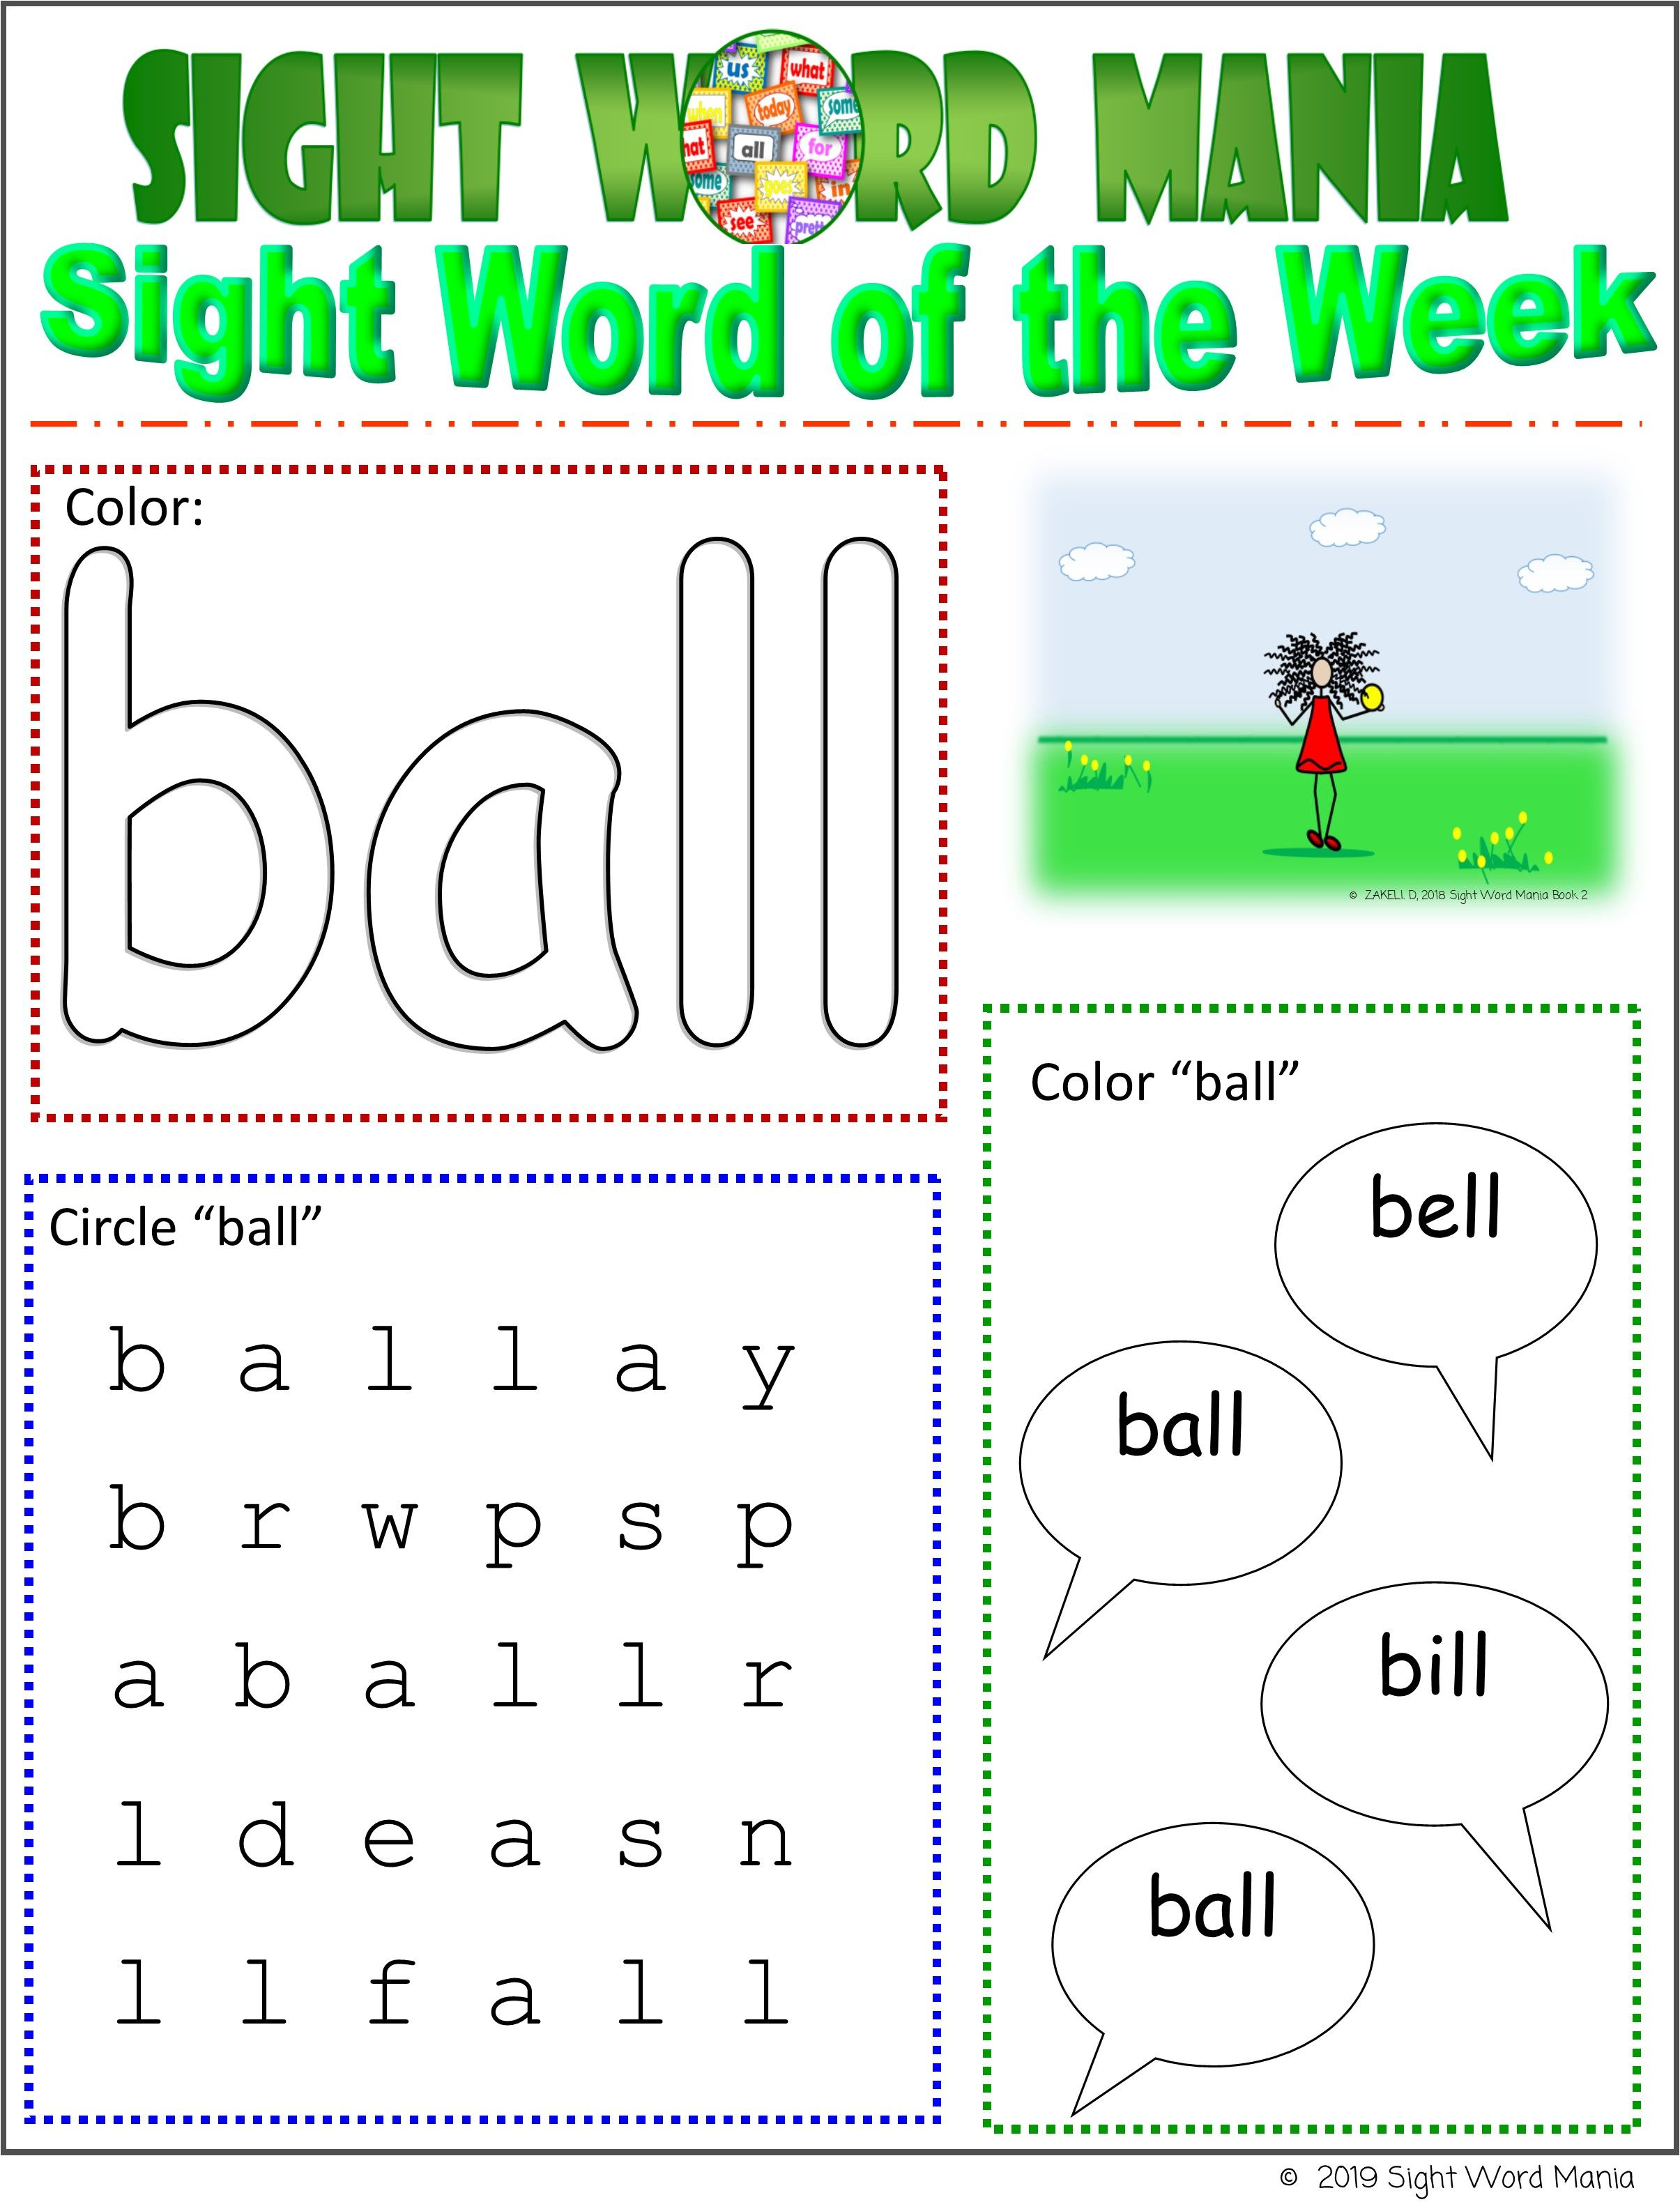 This Bright Colorful Printable Is A Great Tool To Engage